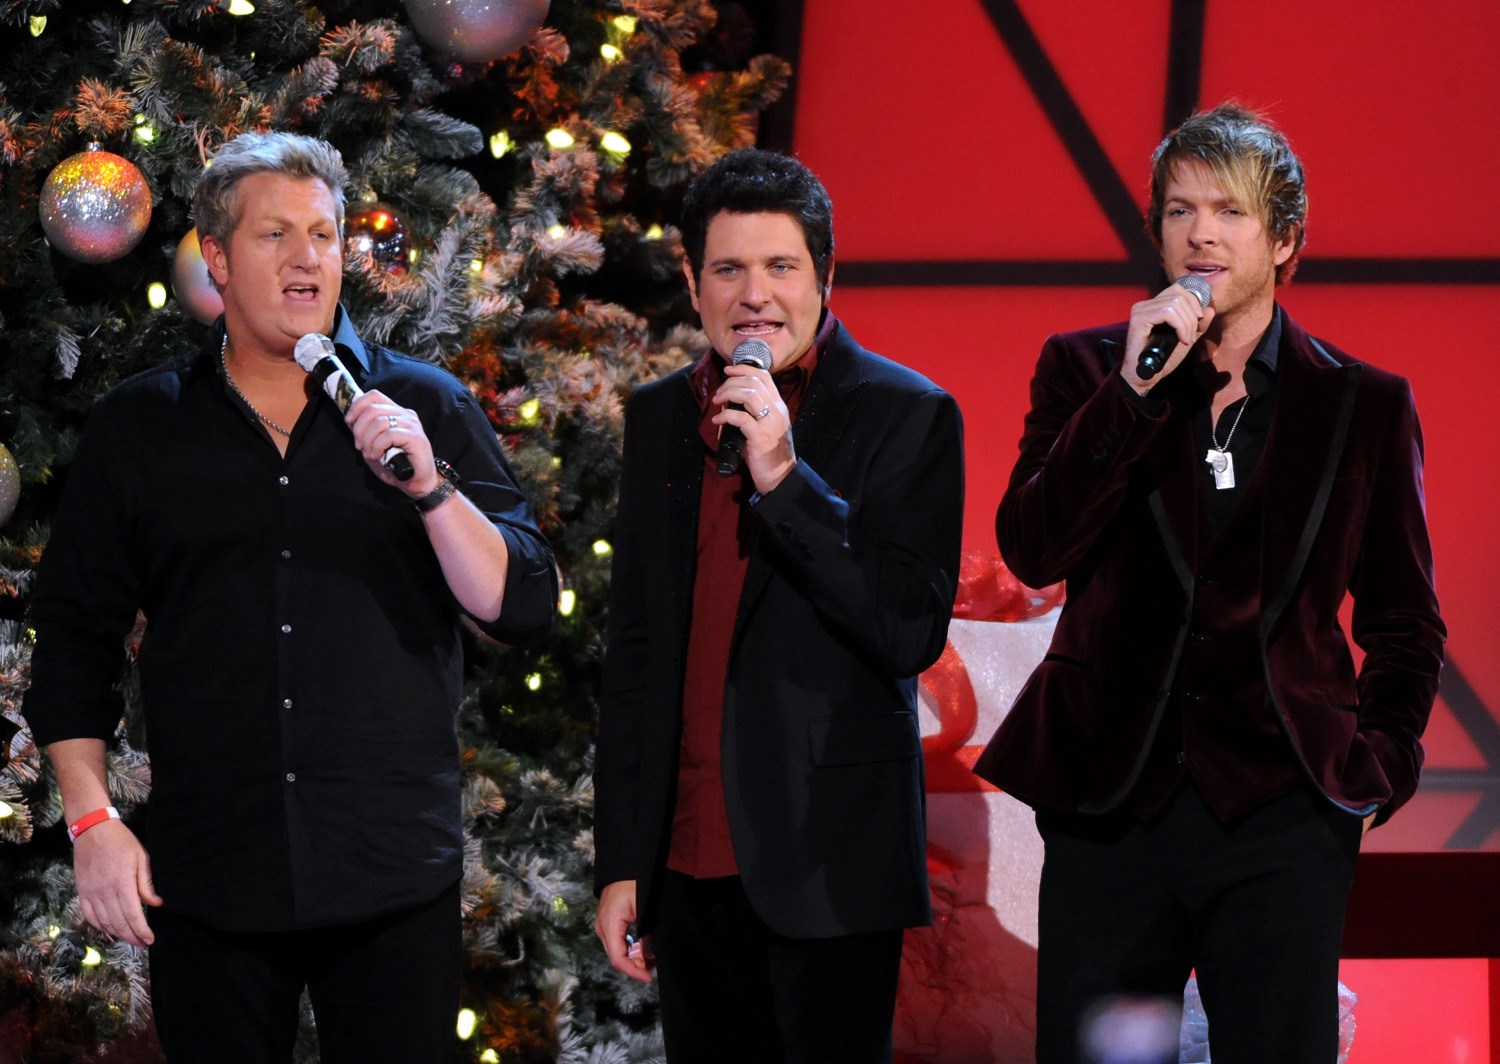 Rascal Flatts to Release Christmas Album - My Merry Christmas